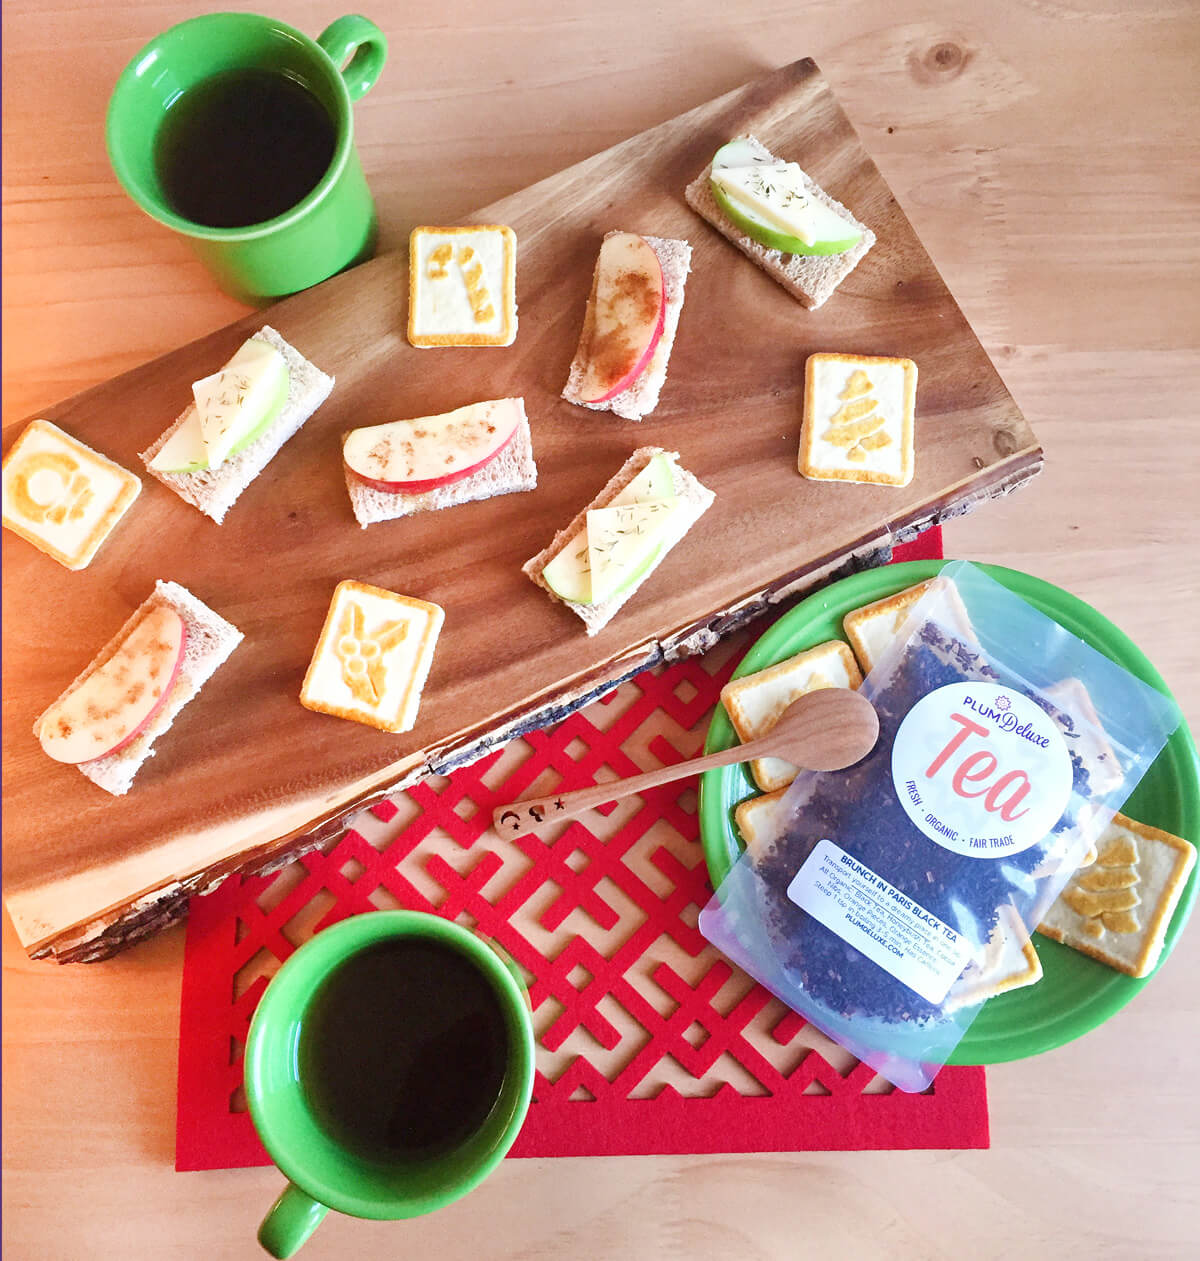 Overhead view of a Christmas tea party with loose leaf tea, cookies, and tea sandwiches on a wooden board and green plates and mugs.